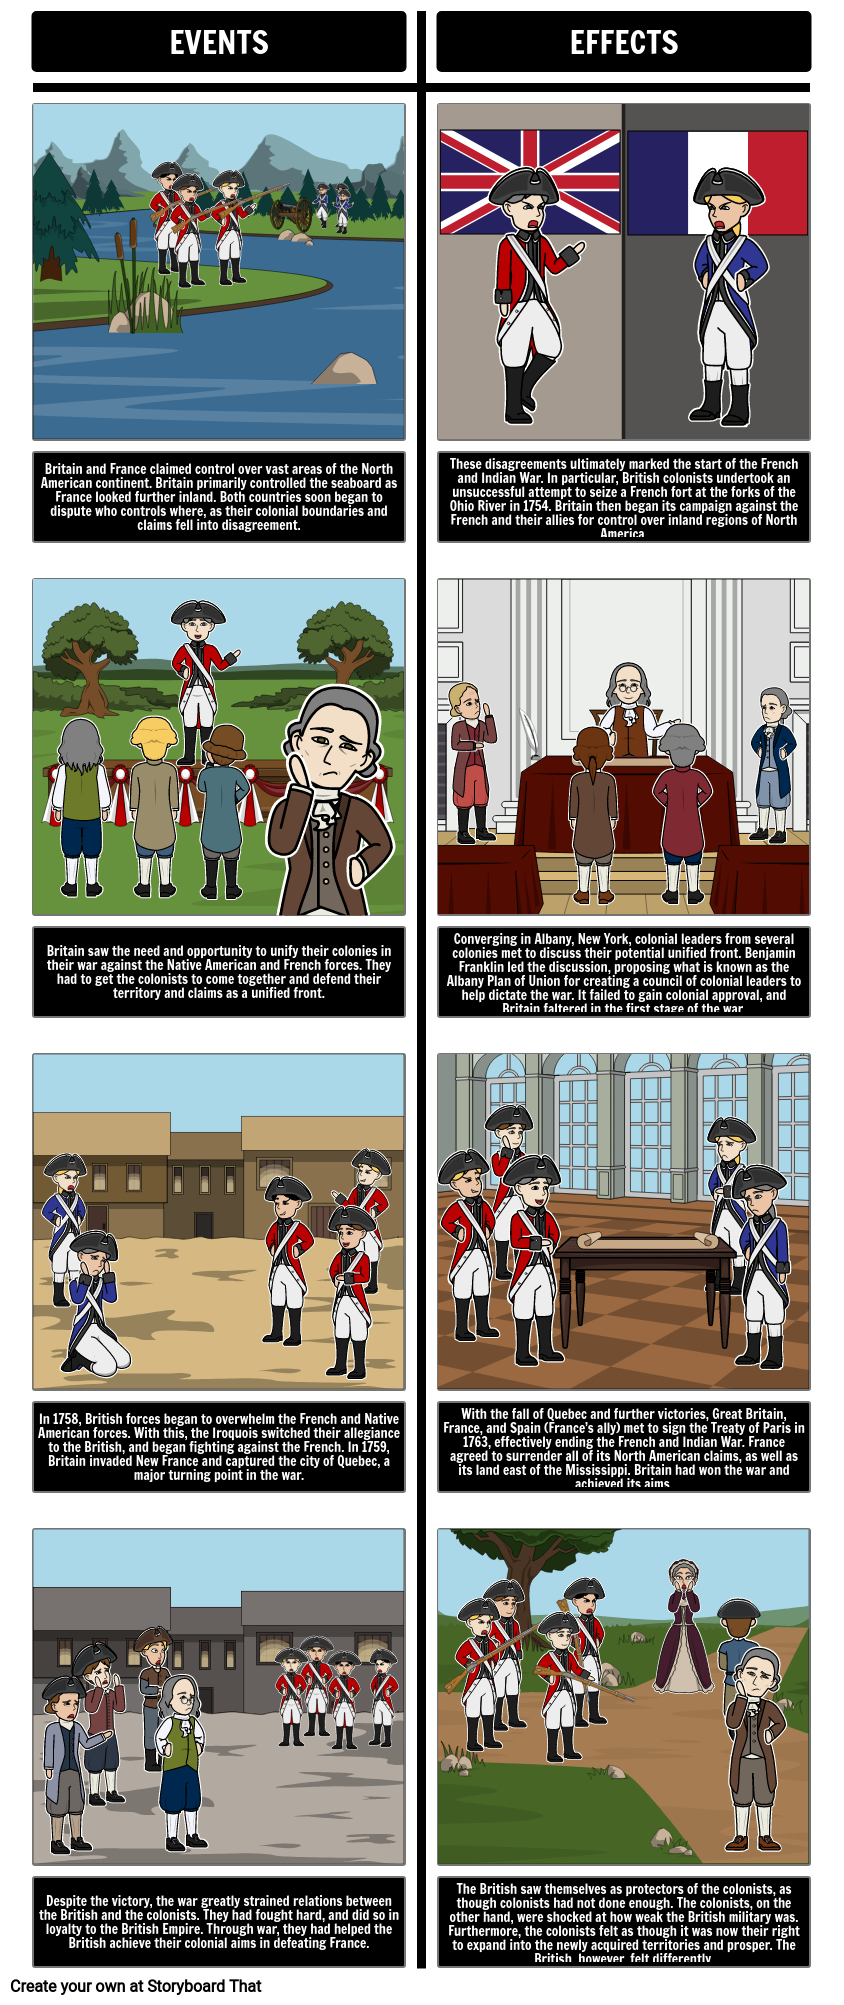 Causes of the american revolution timeline activities the french and indian war 1754 63 publicscrutiny Images